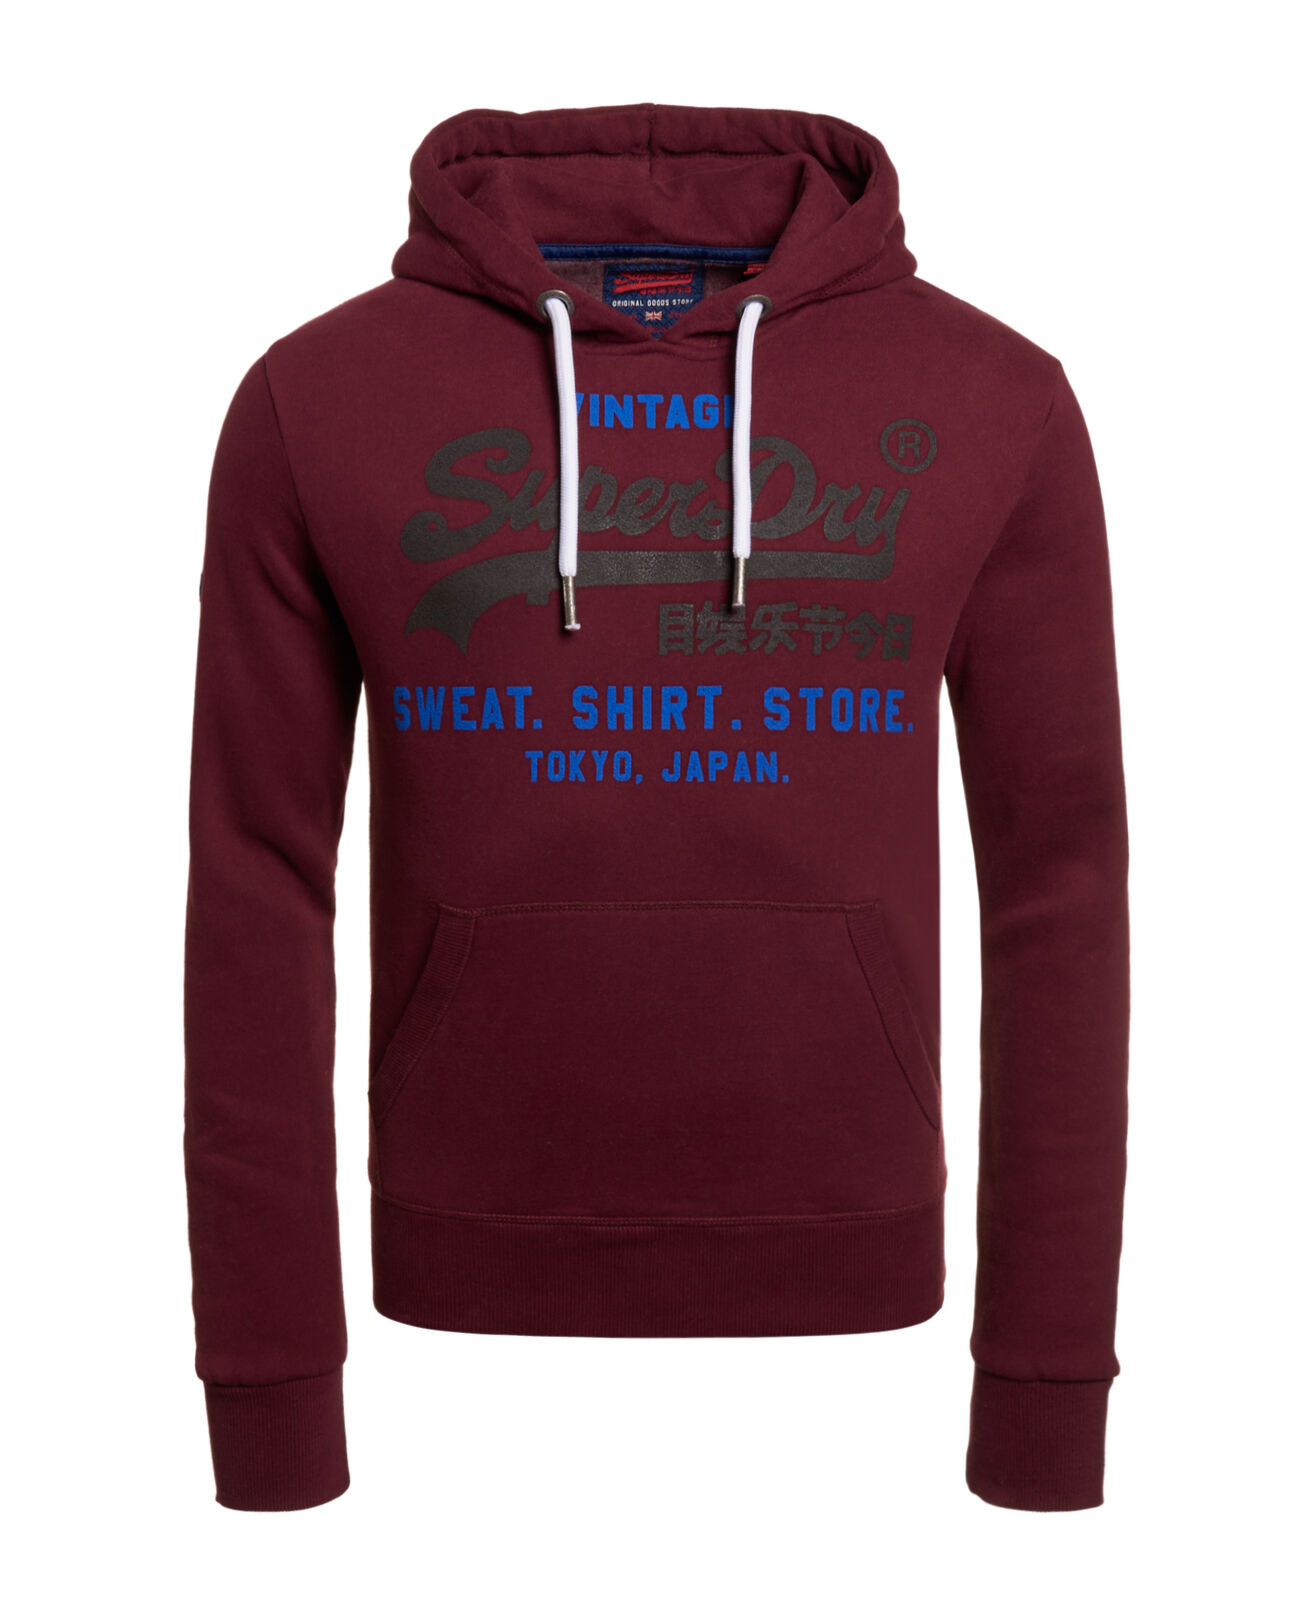 Details about New Mens Superdry Sweat Shirt Shop Duo Hoodie Tin Tab Burgungy